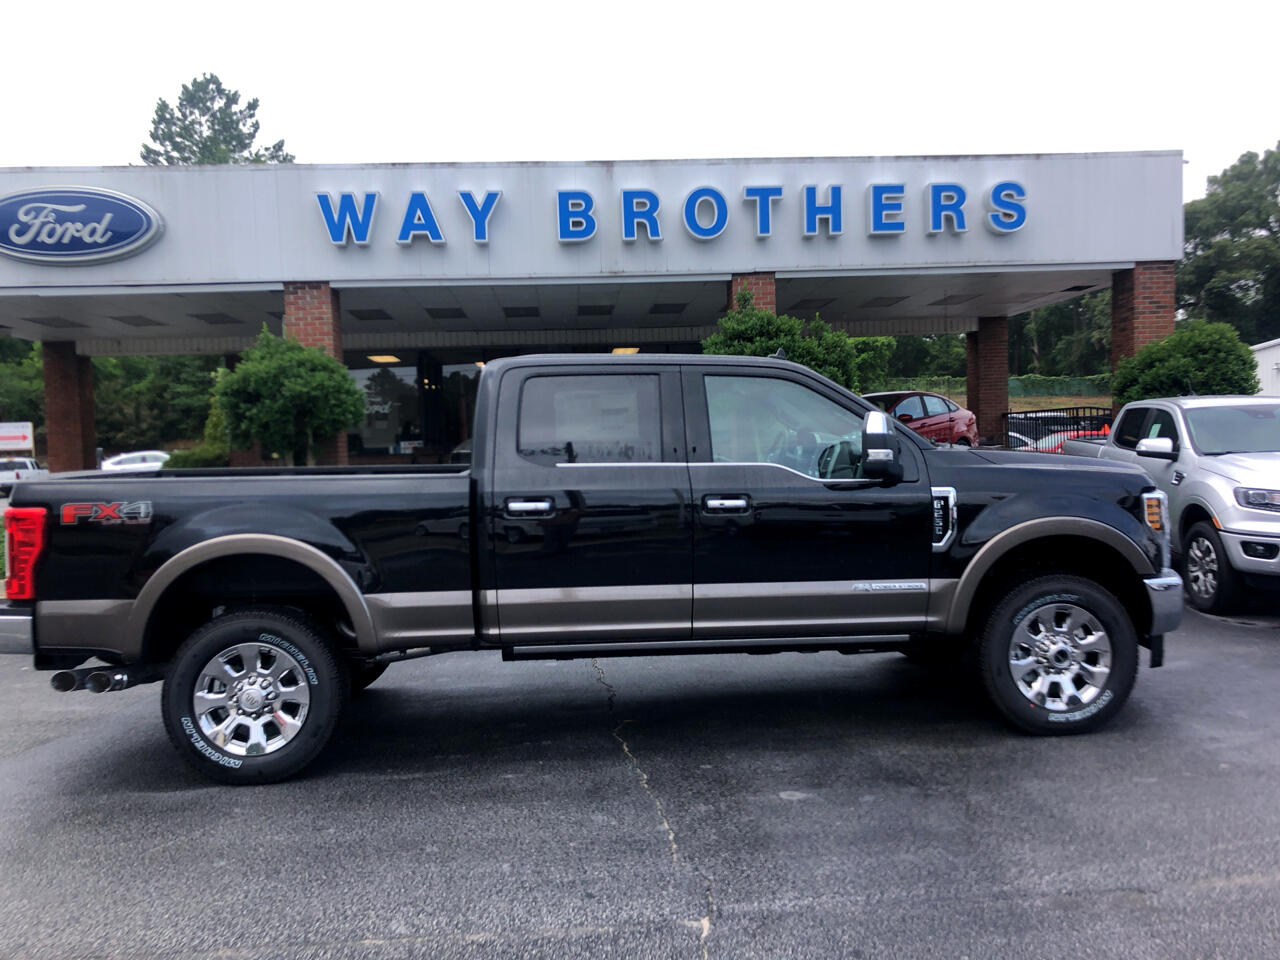 2019 Ford Super Duty F-250 SRW KING RANCH 4WD CREW CAB 6